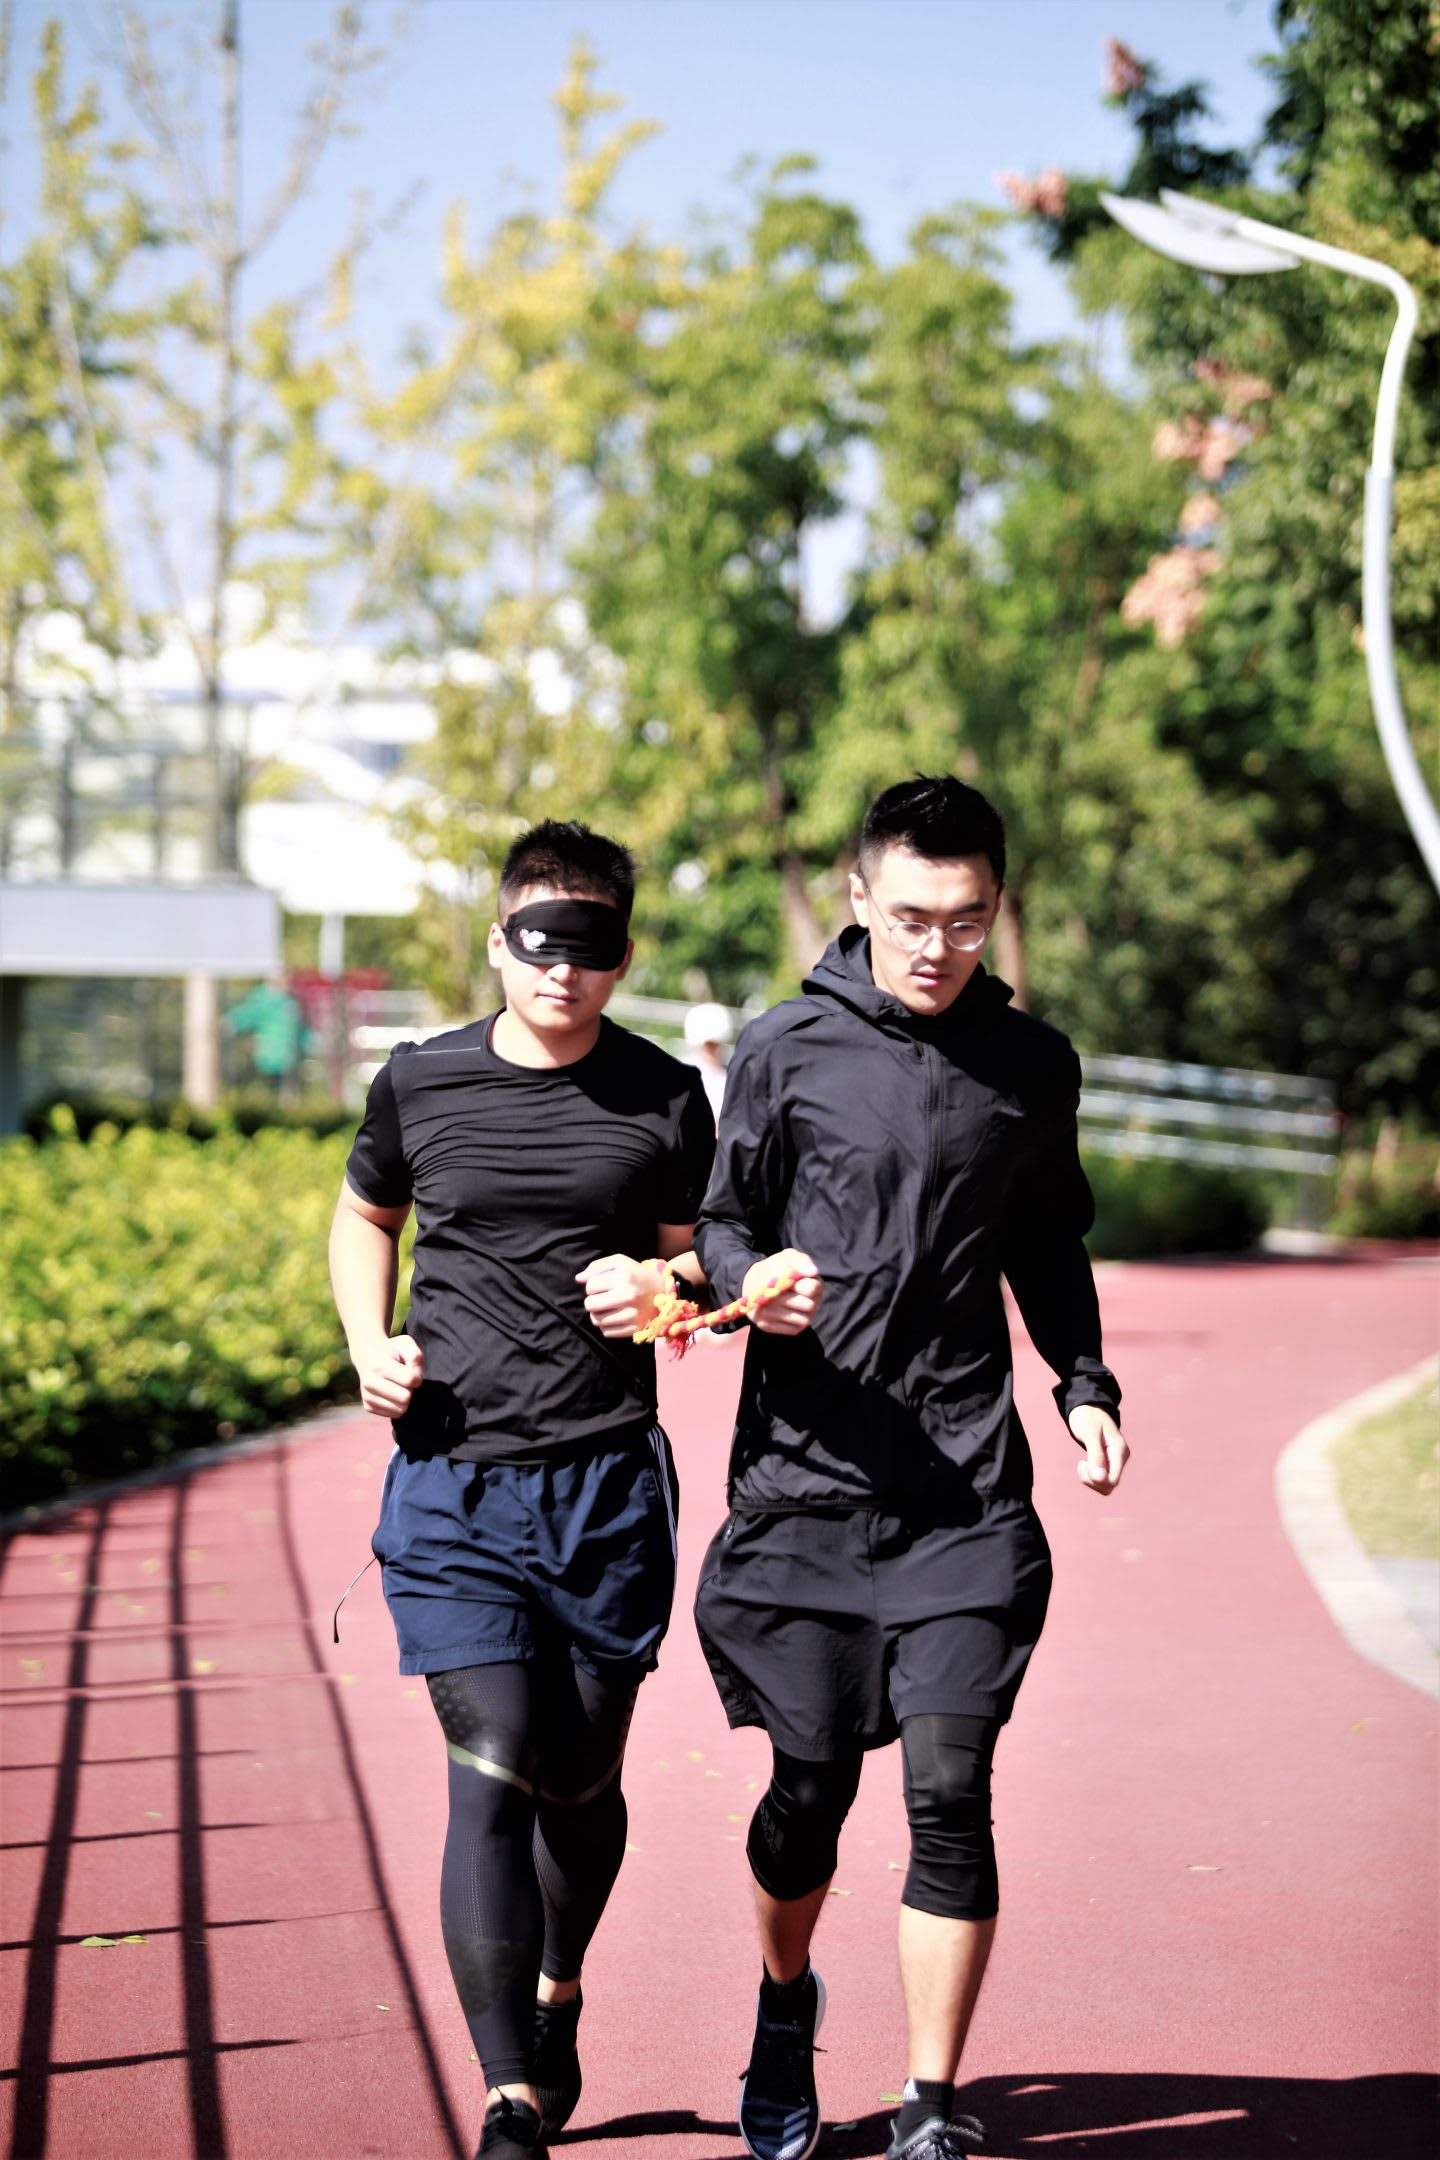 A blind runner and his guide training to run together on the track. guided running, blind running, personal growth, volunteering, GamePlan A.